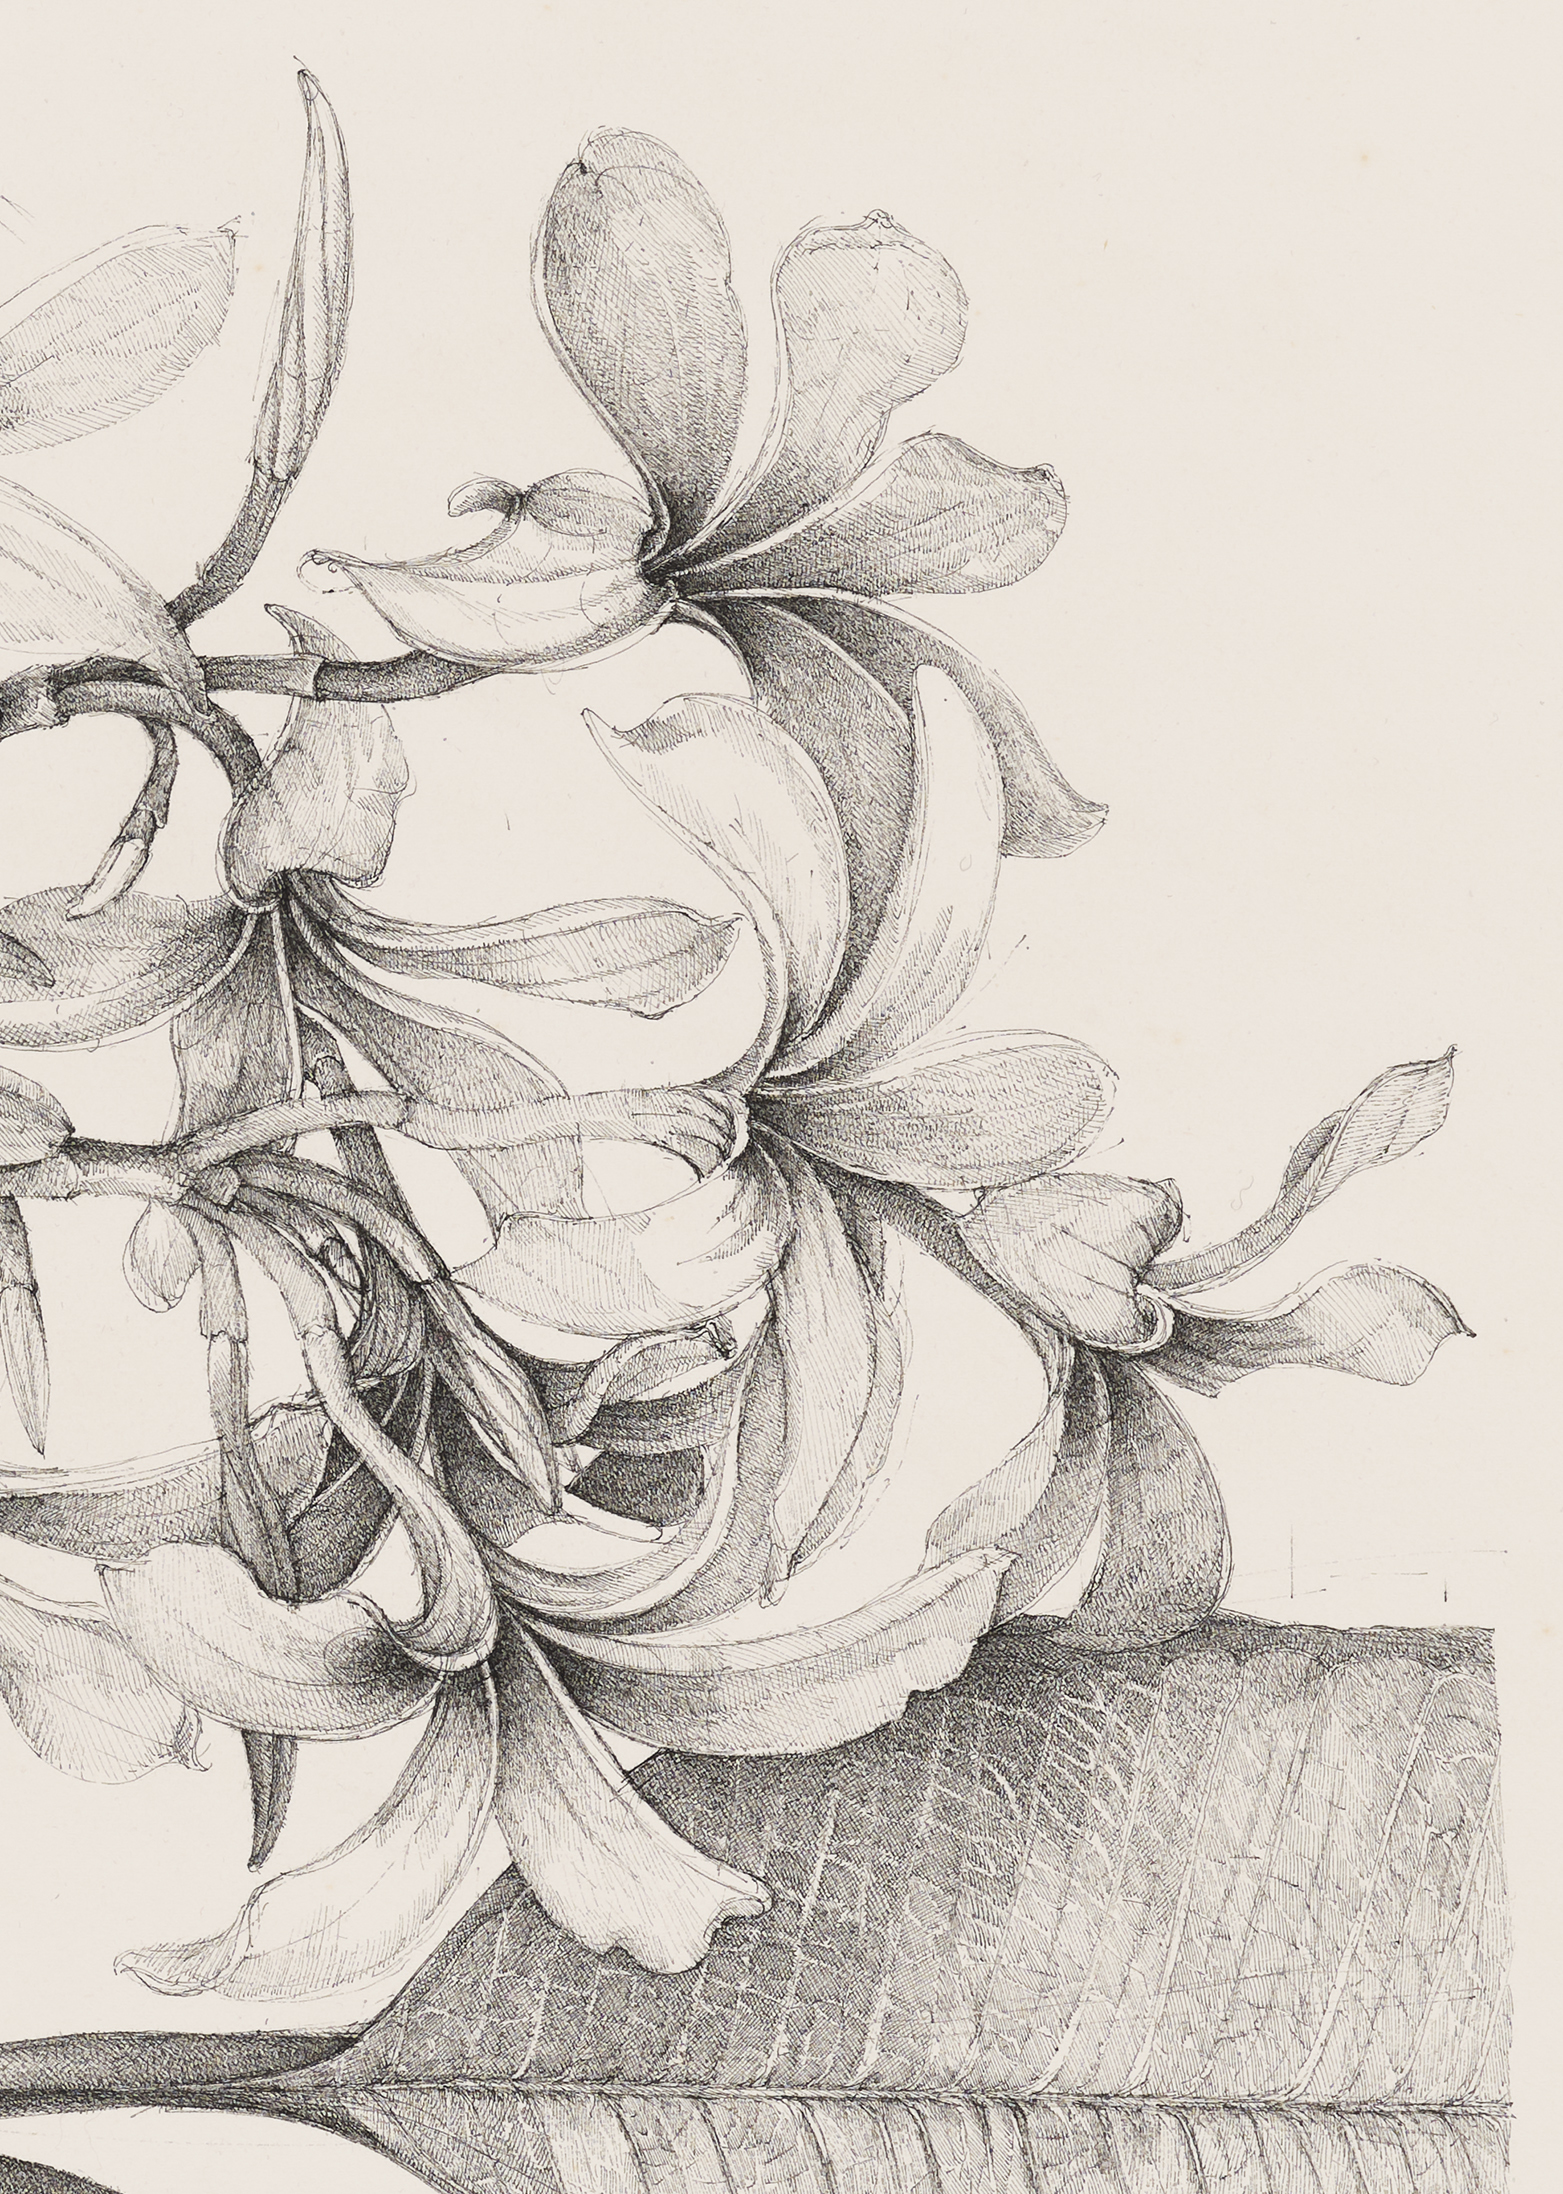 Charmian Johnson, not titled (detail), unknown date, ink on paper, 26 x 34 in. (65 x 85 cm) by